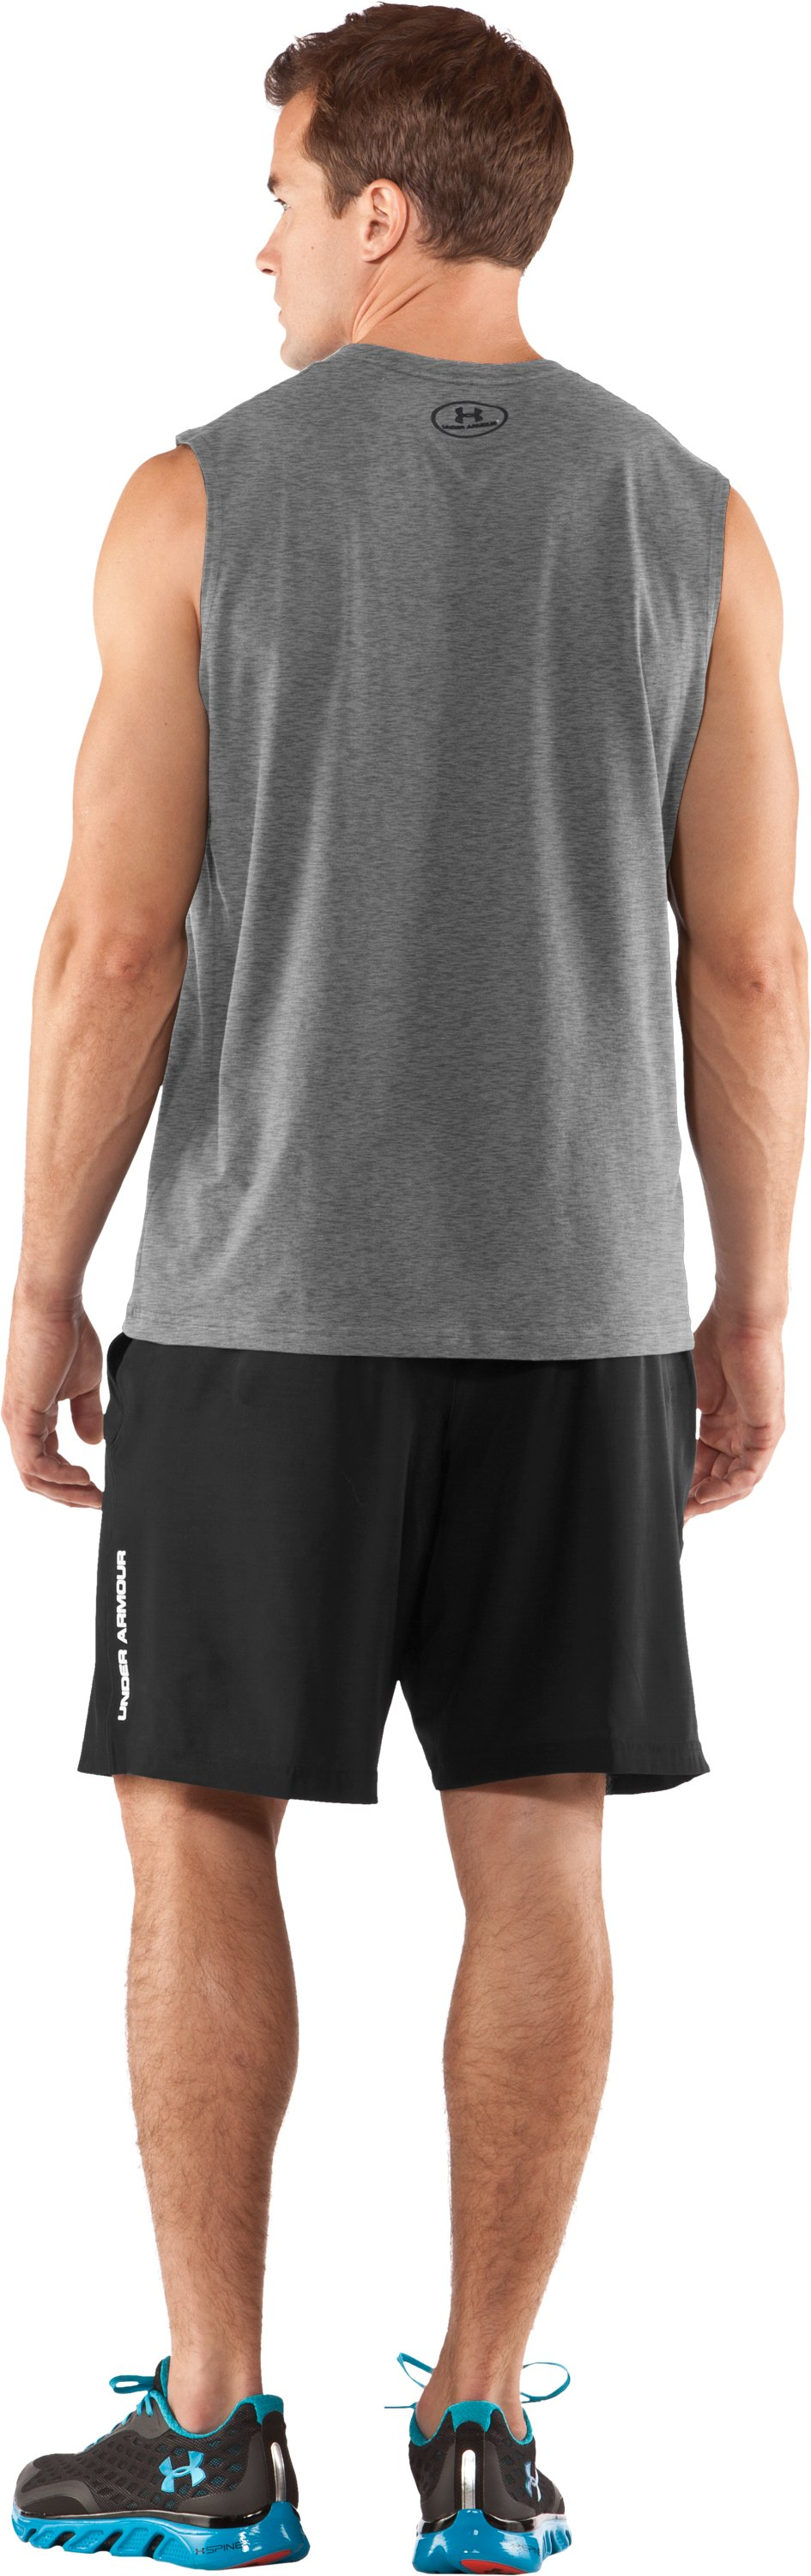 Men's Charged Cotton® Sleeveless T-shirt, True Gray Heather, Back